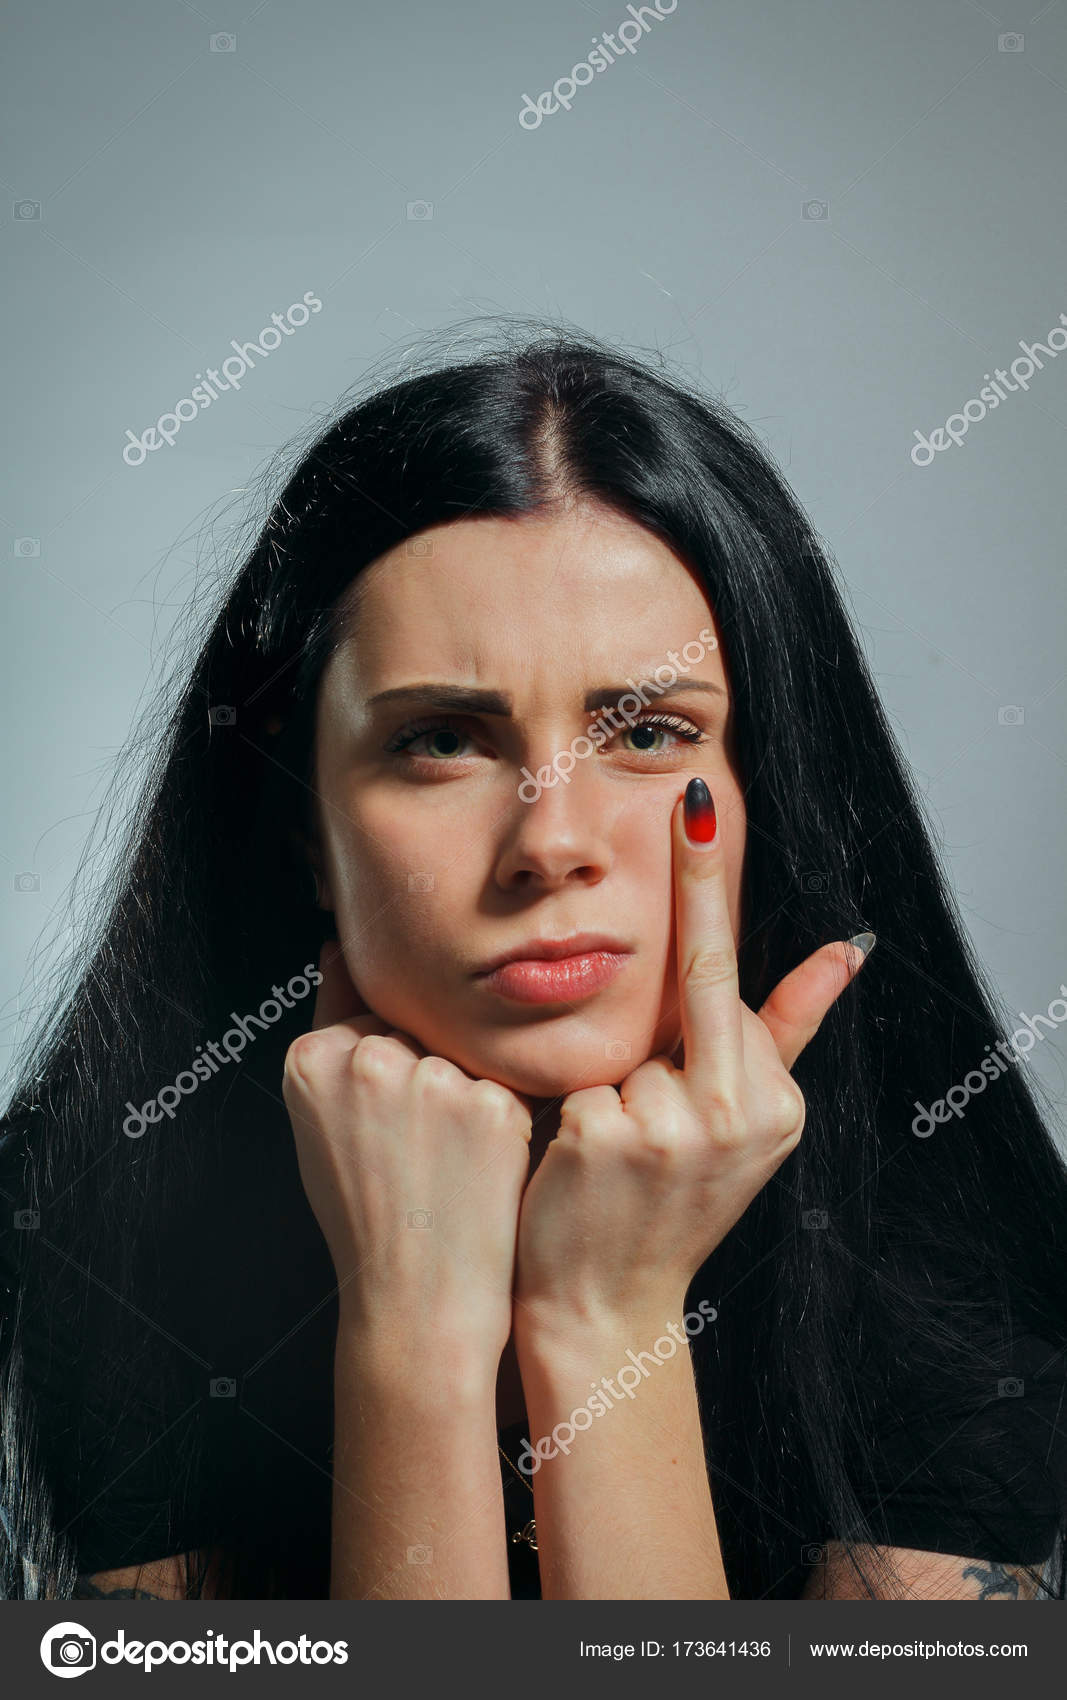 Bad girl showing fuck off– stock image